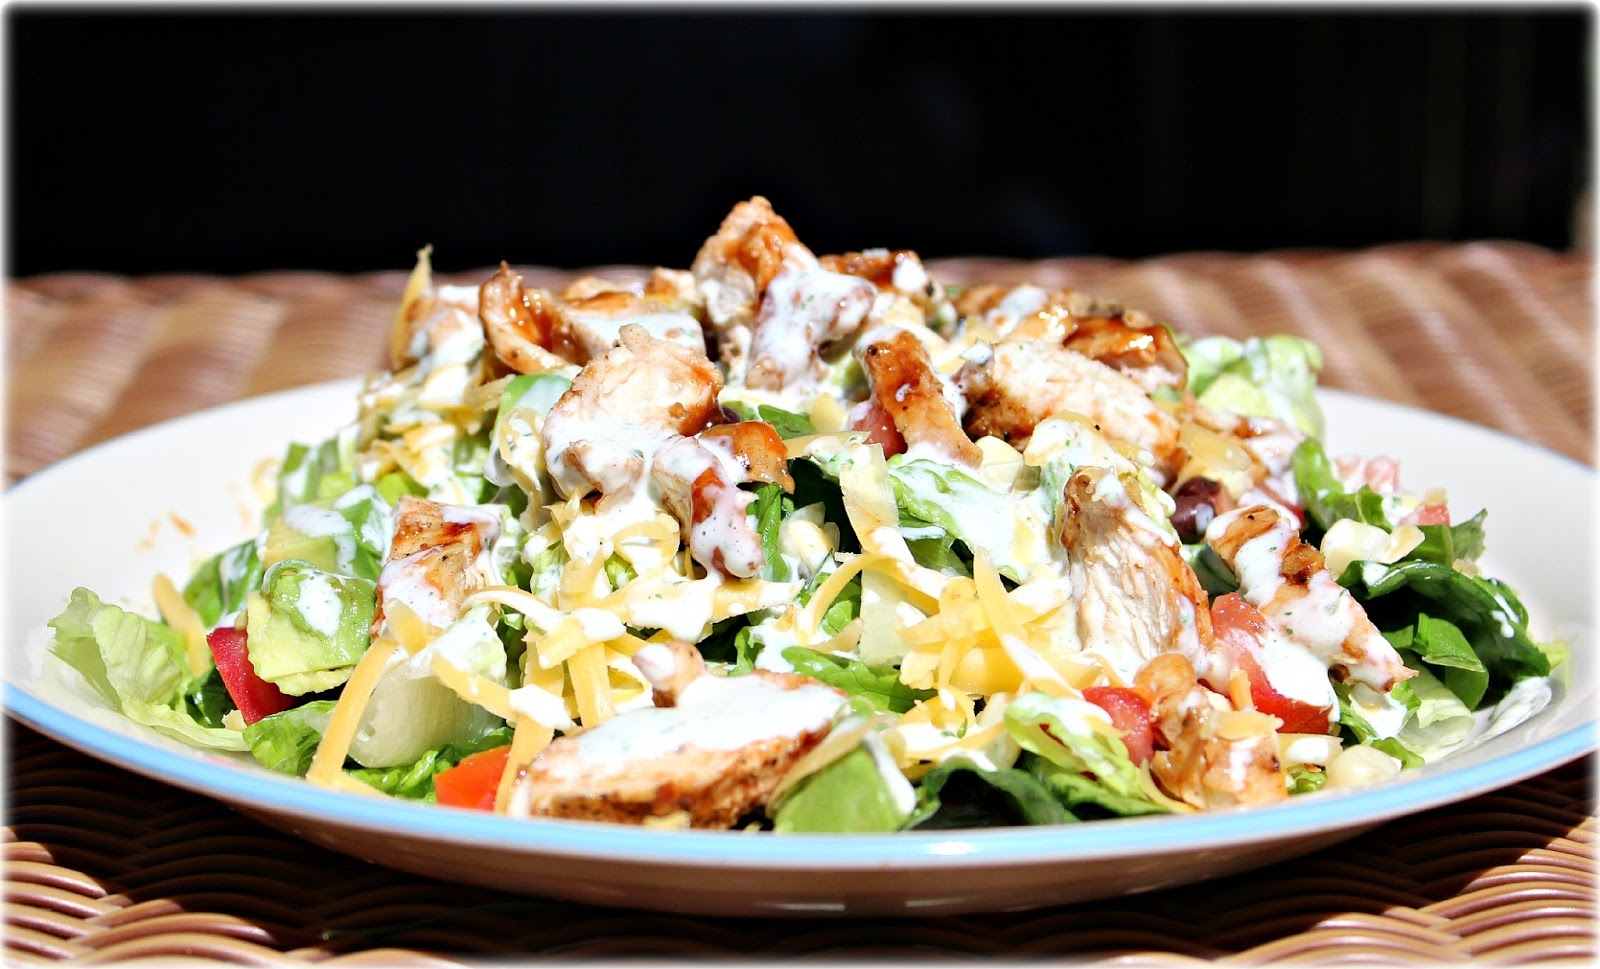 BBQ Chicken Salad w/ Cilantro Lime Ranch: AJcrazies by AJK